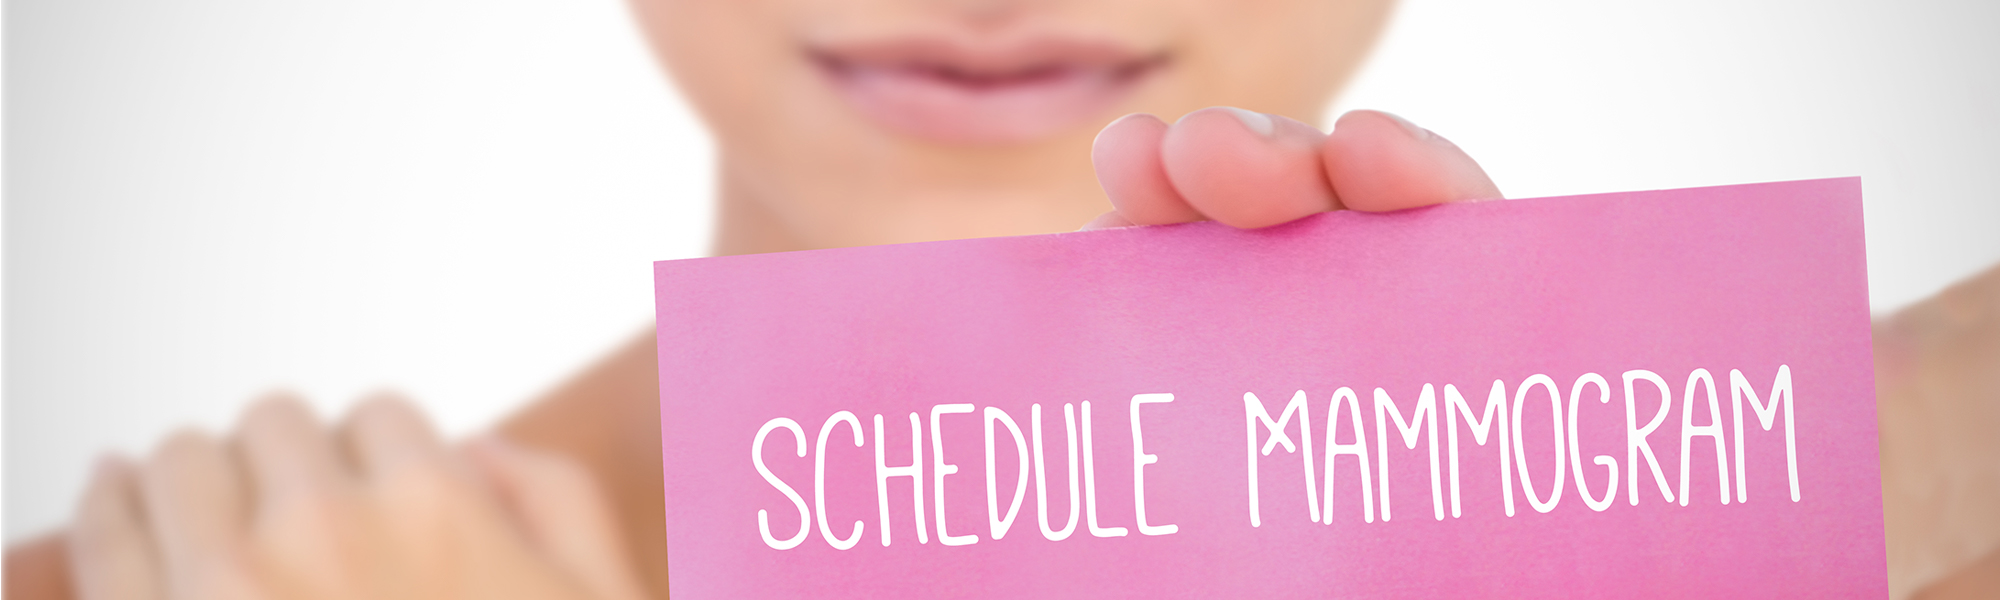 Schedule a mammogram at a location near you.